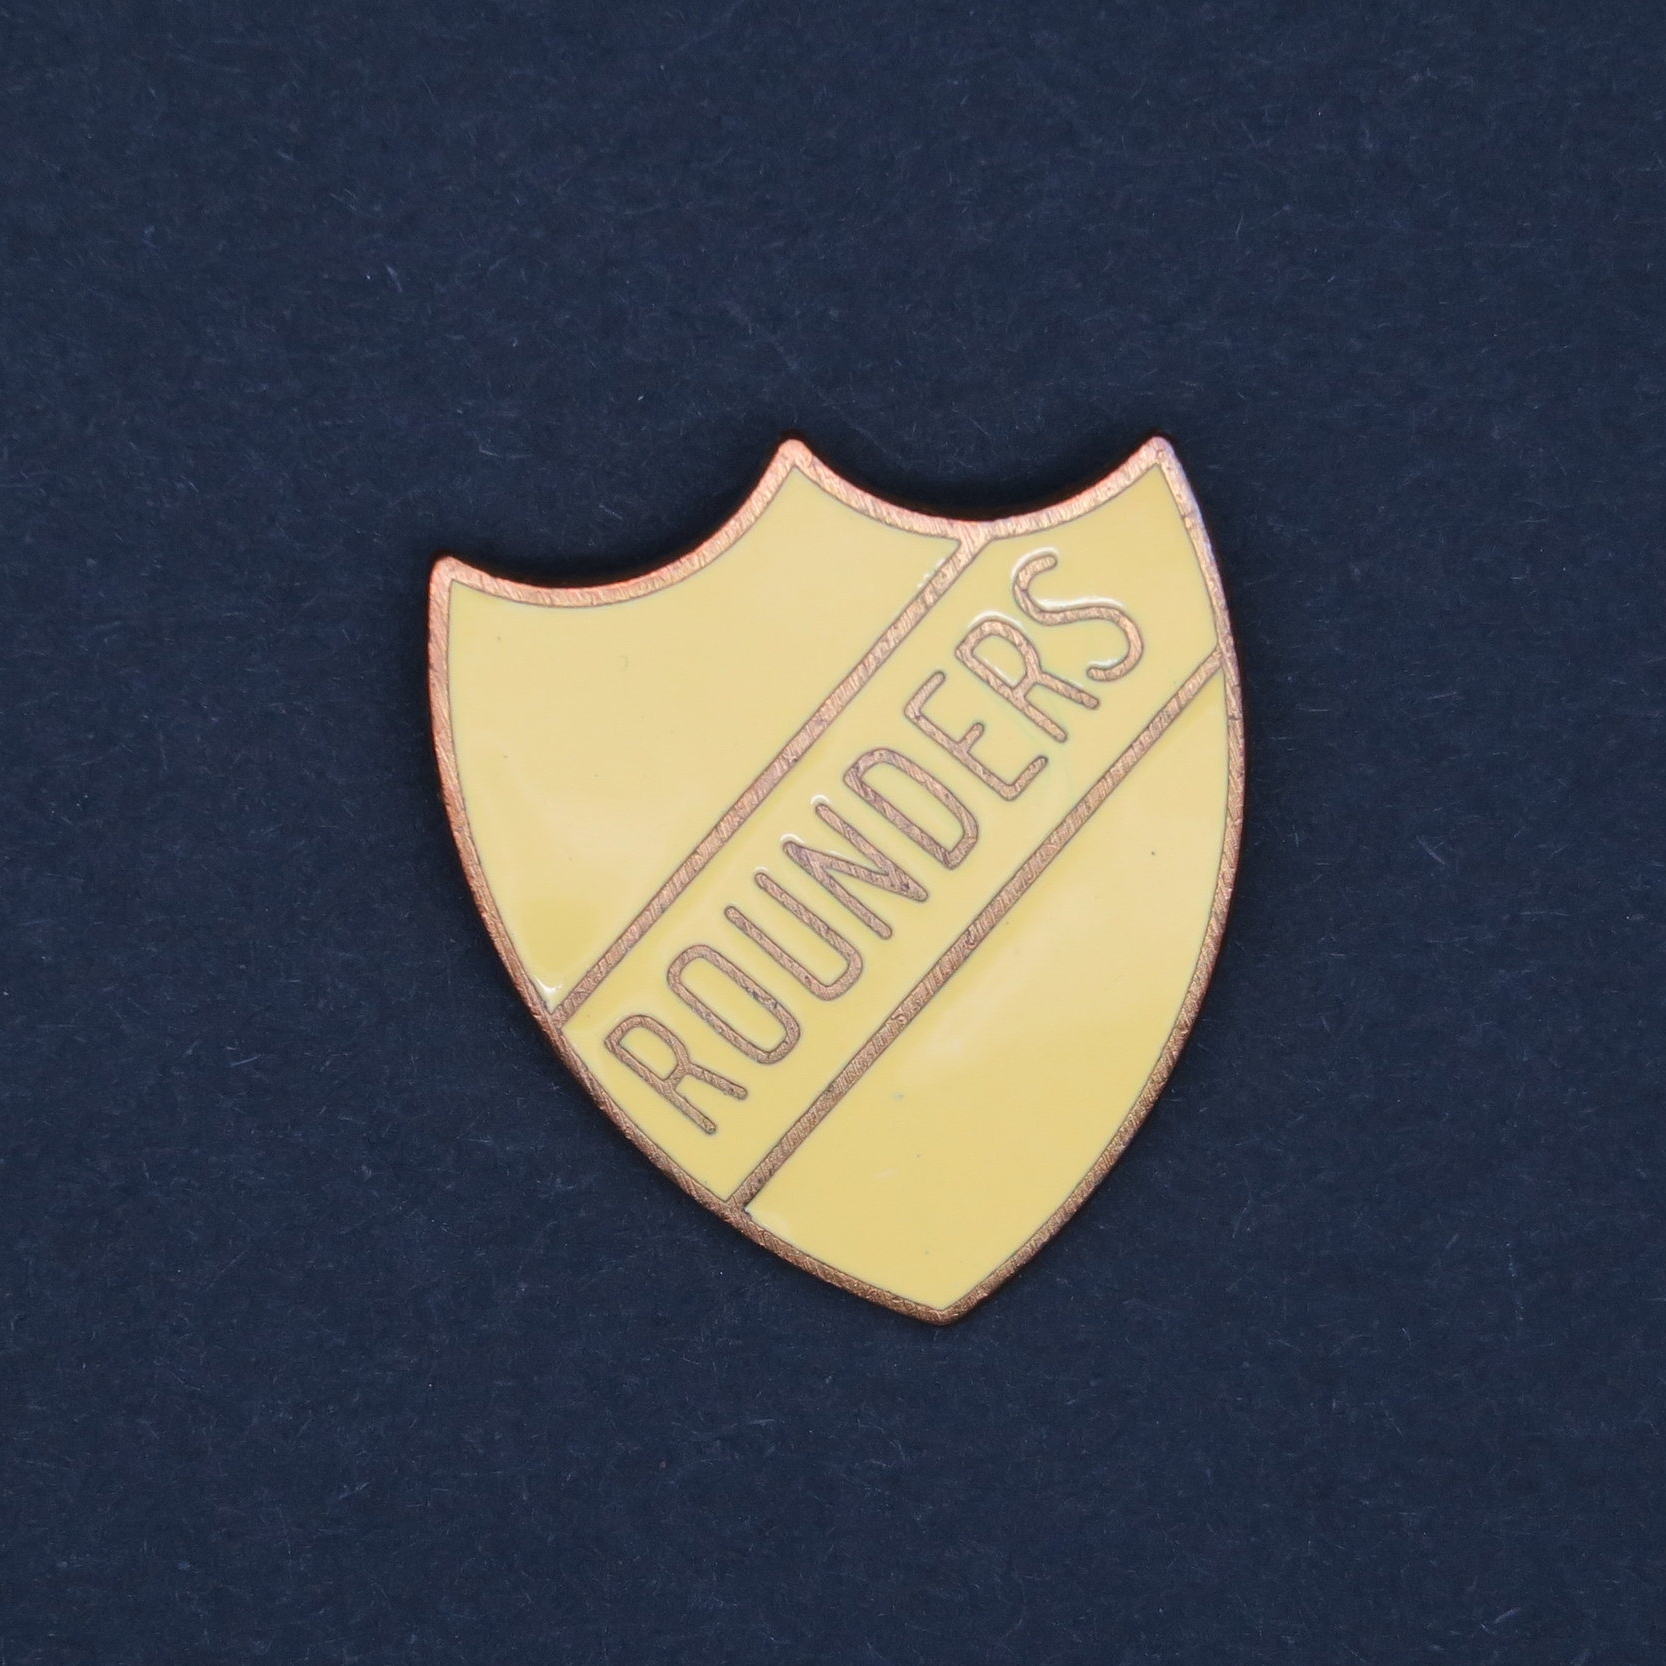 Like a 'prefect' badge, but better, because it says 'rounders'.